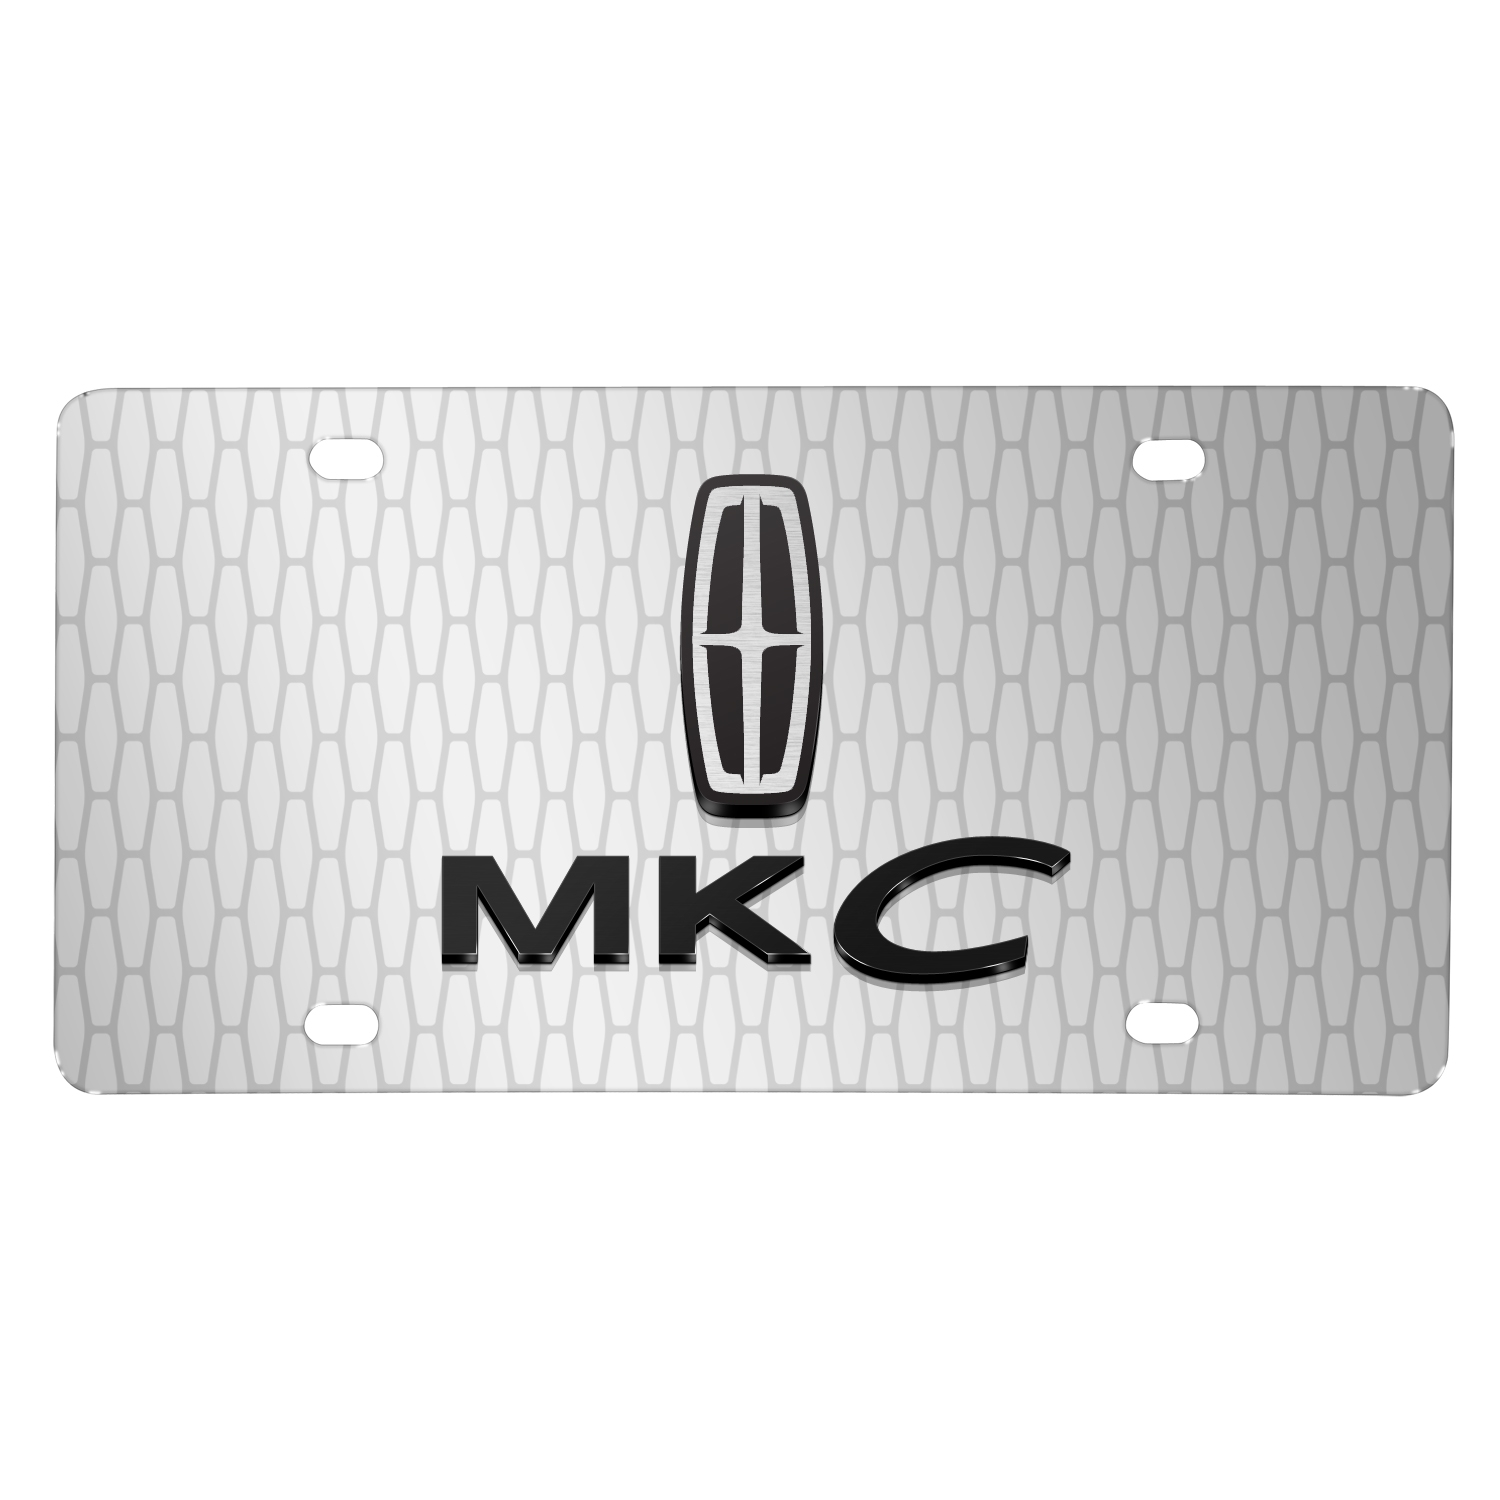 "Lincoln MKC 3D Logo on Front Grill pattern 12""x6"" Brushed Aluminum License Plate"